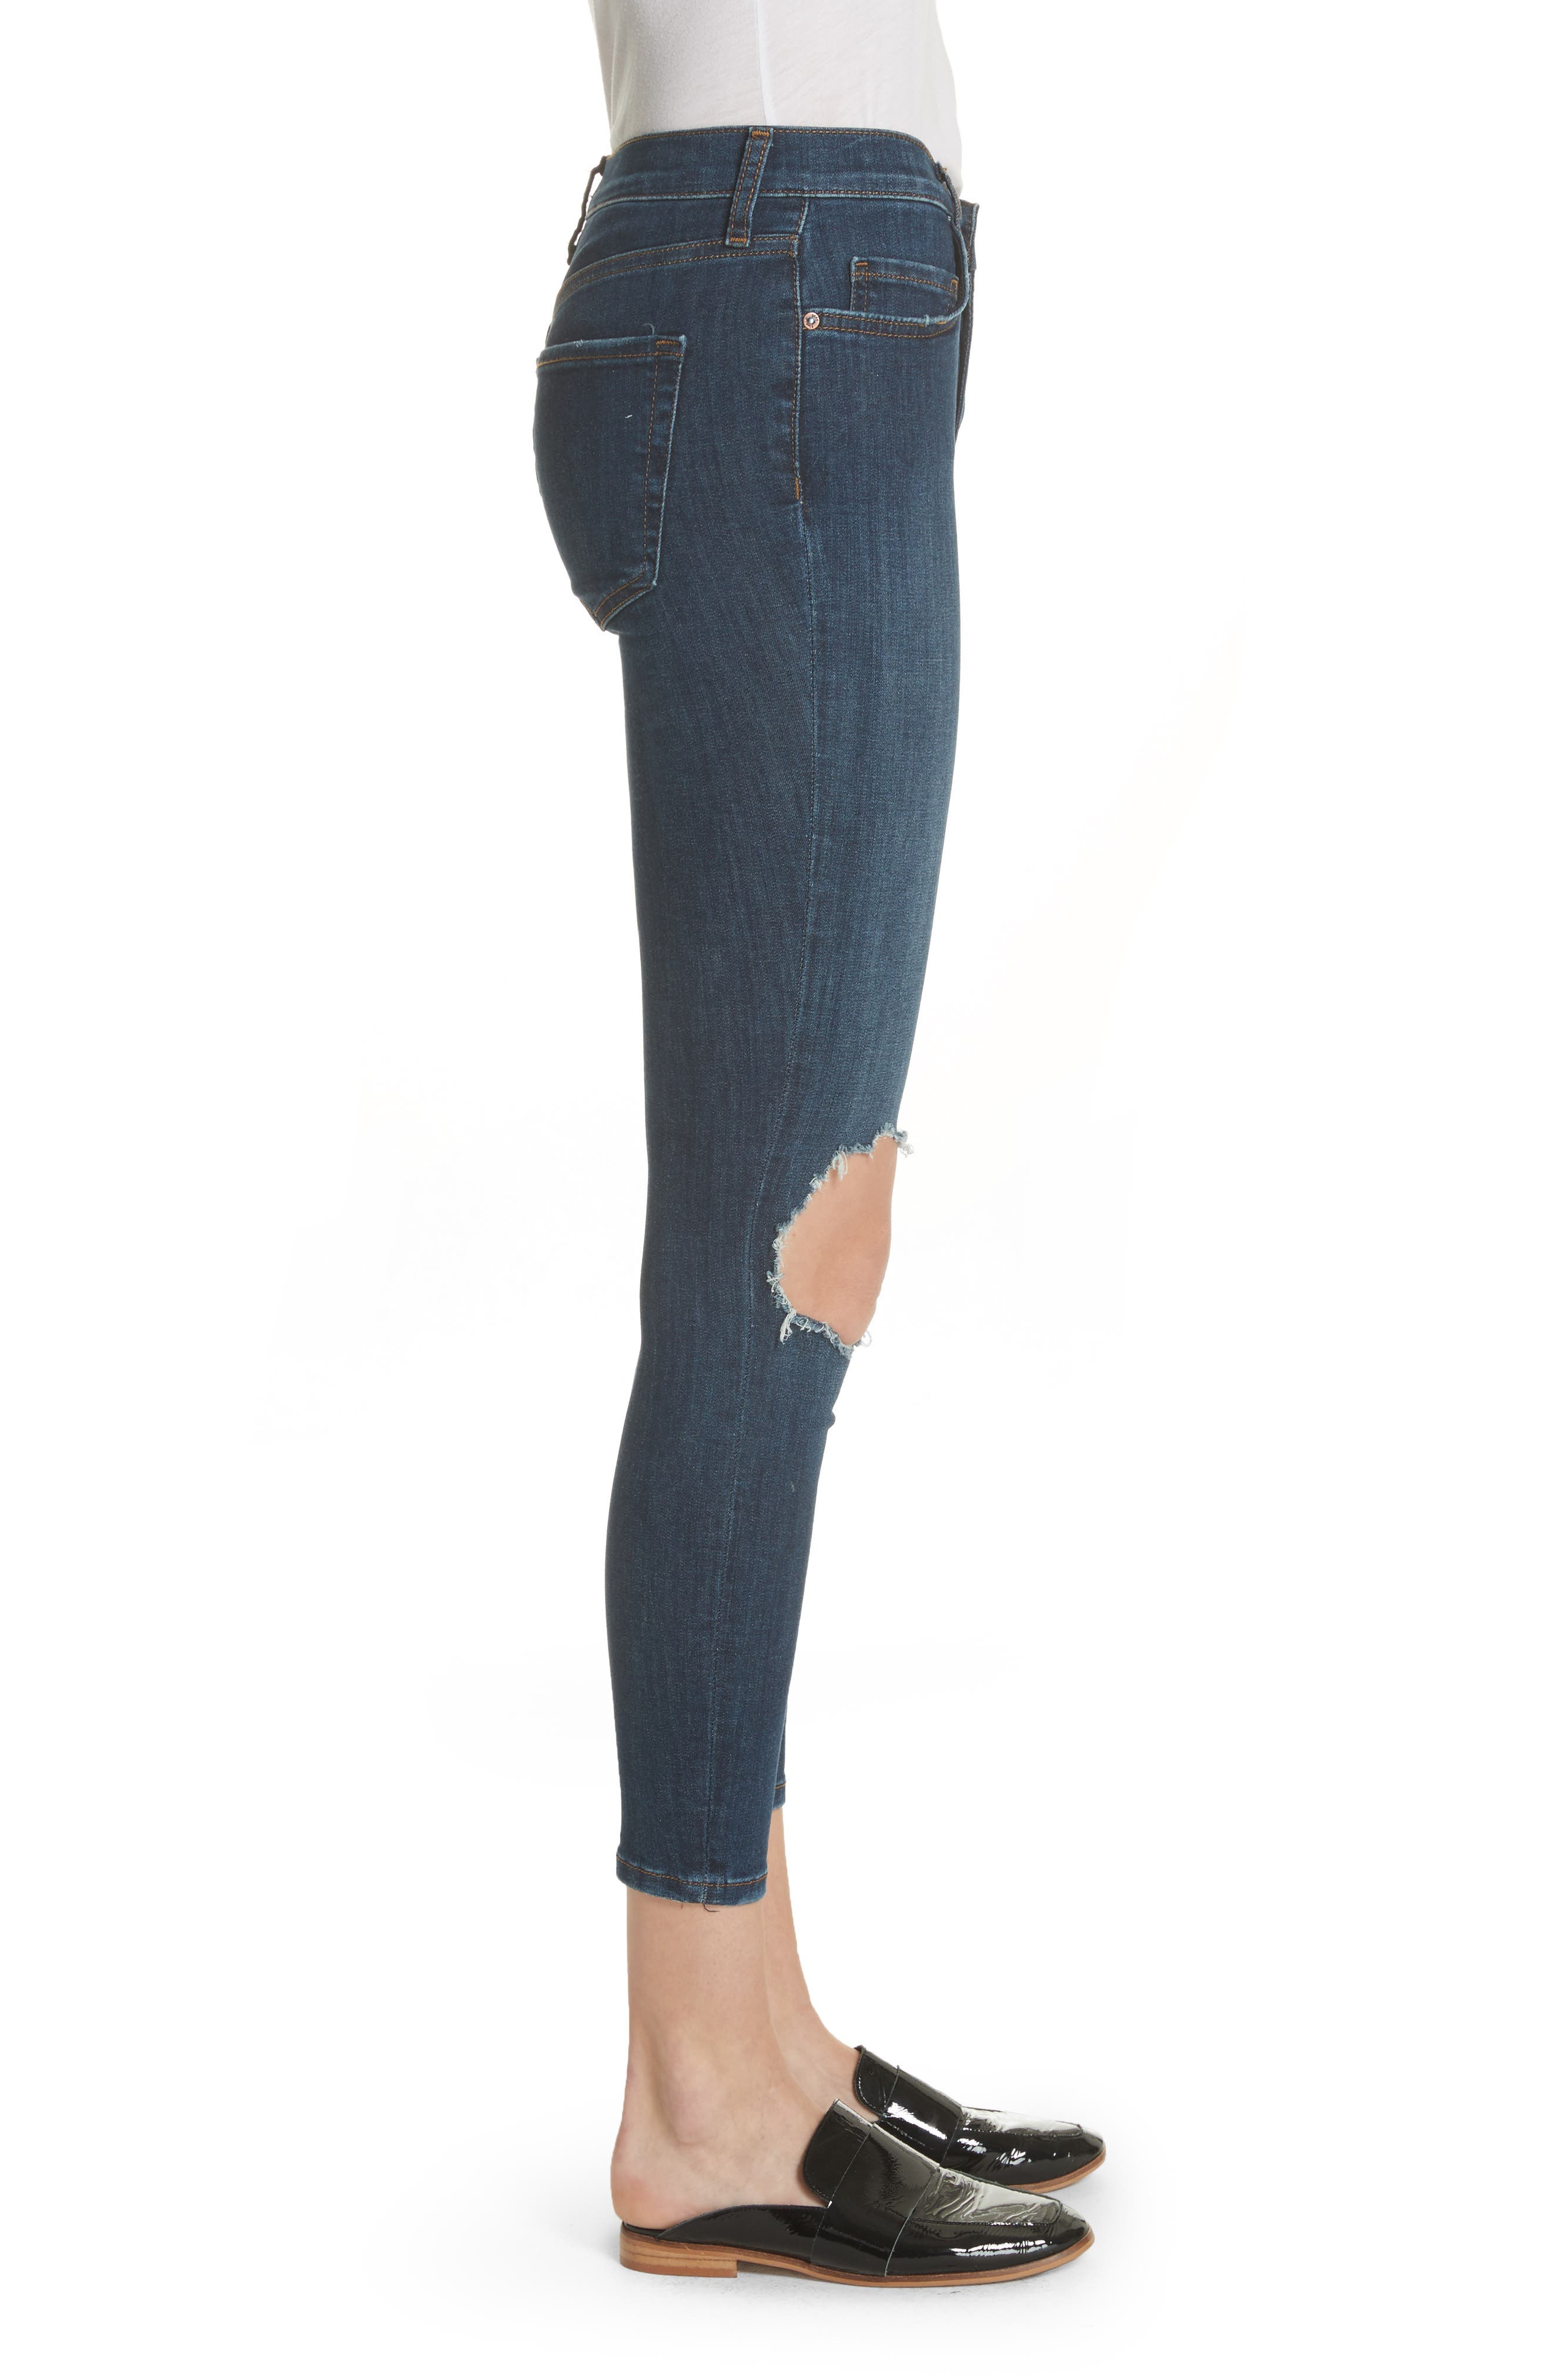 FREE PEOPLE, We the Free by Free People High Waist Ankle Skinny Jeans, Alternate thumbnail 4, color, DARK BLUE